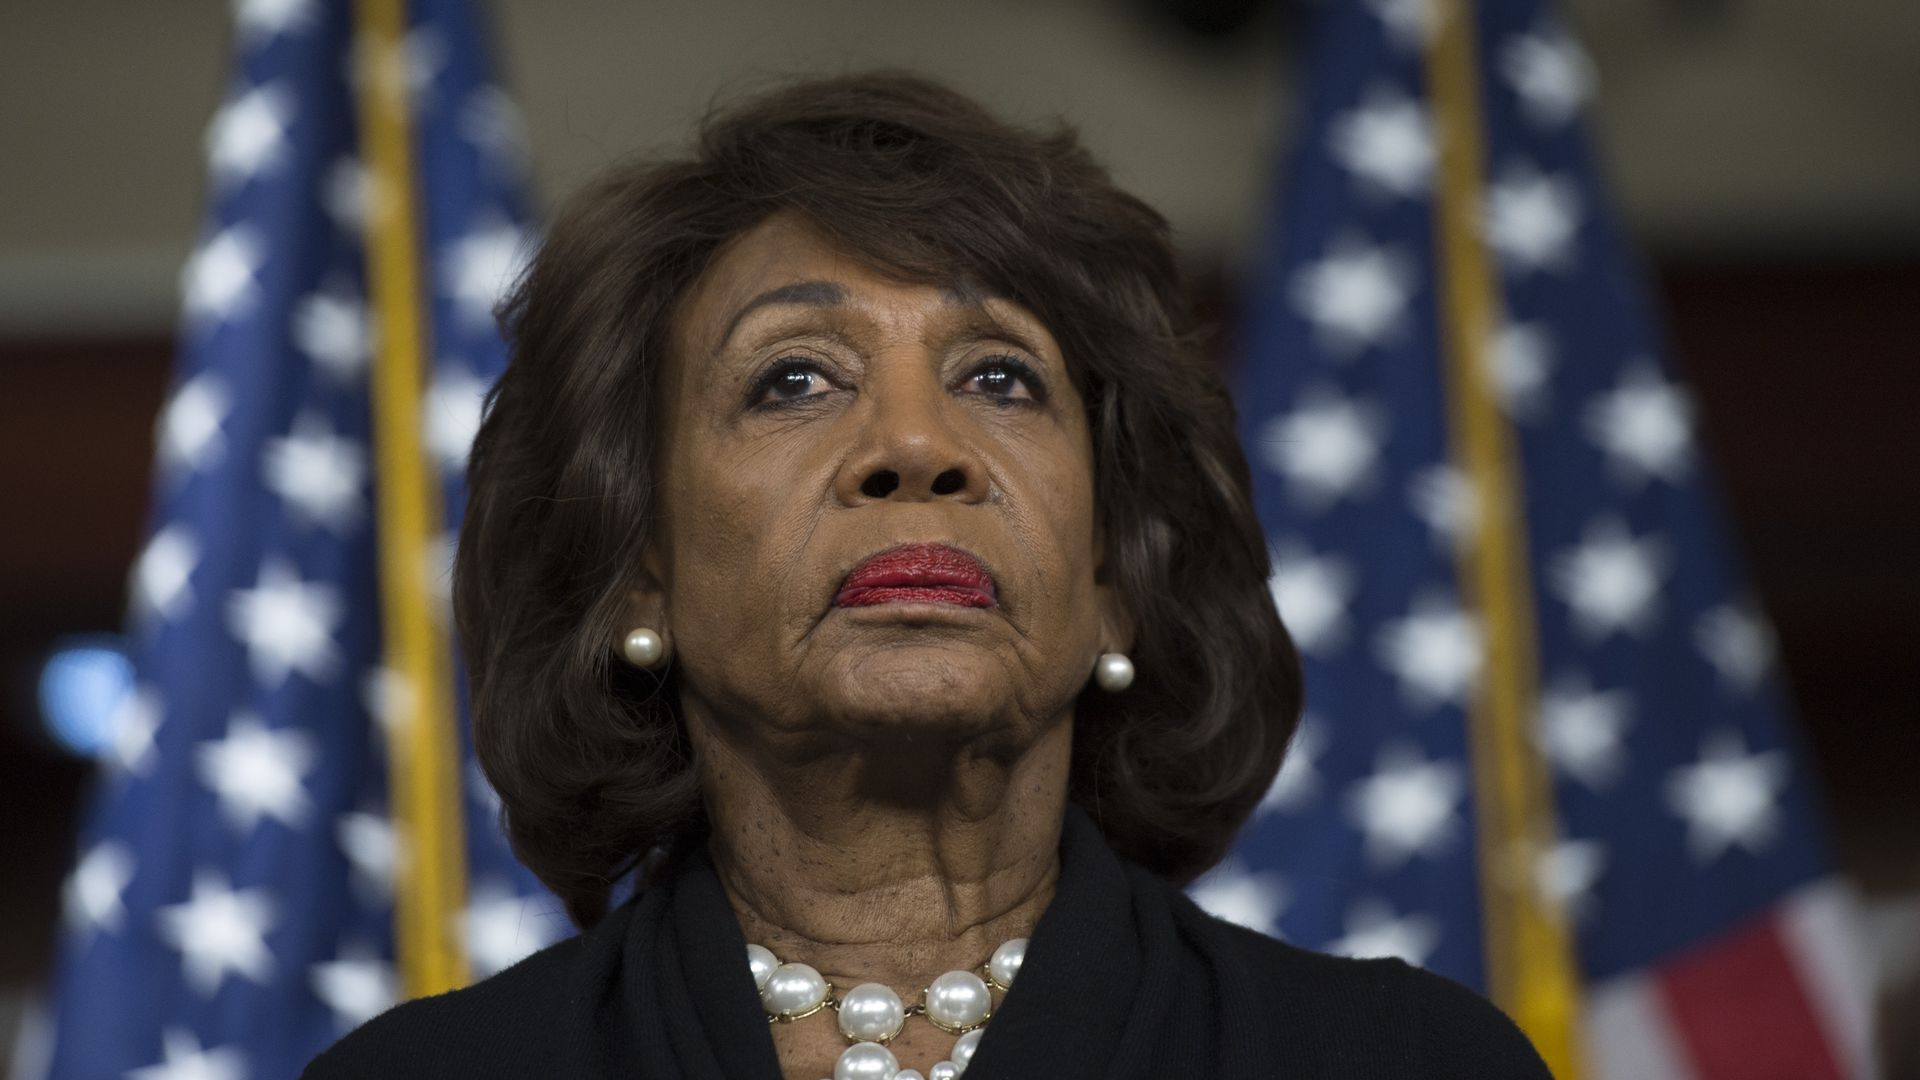 Maxine Waters in a black outfit frowning.